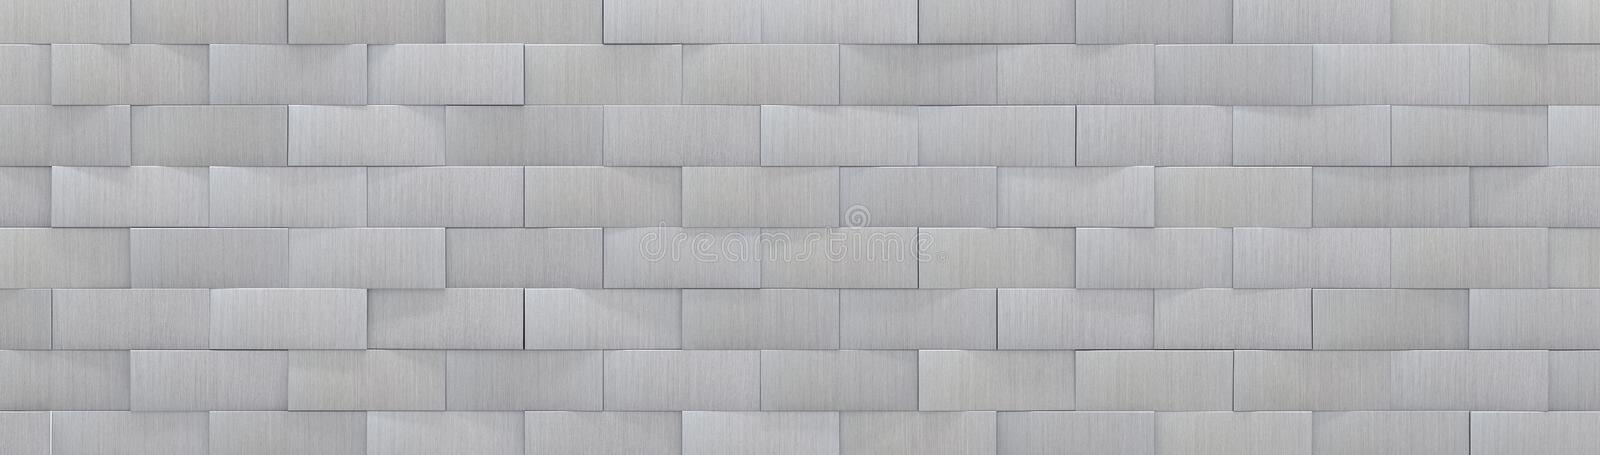 Metal Panels Background 3D Illustration. Aluminum metal panels background website head, 3d render illustration royalty free illustration